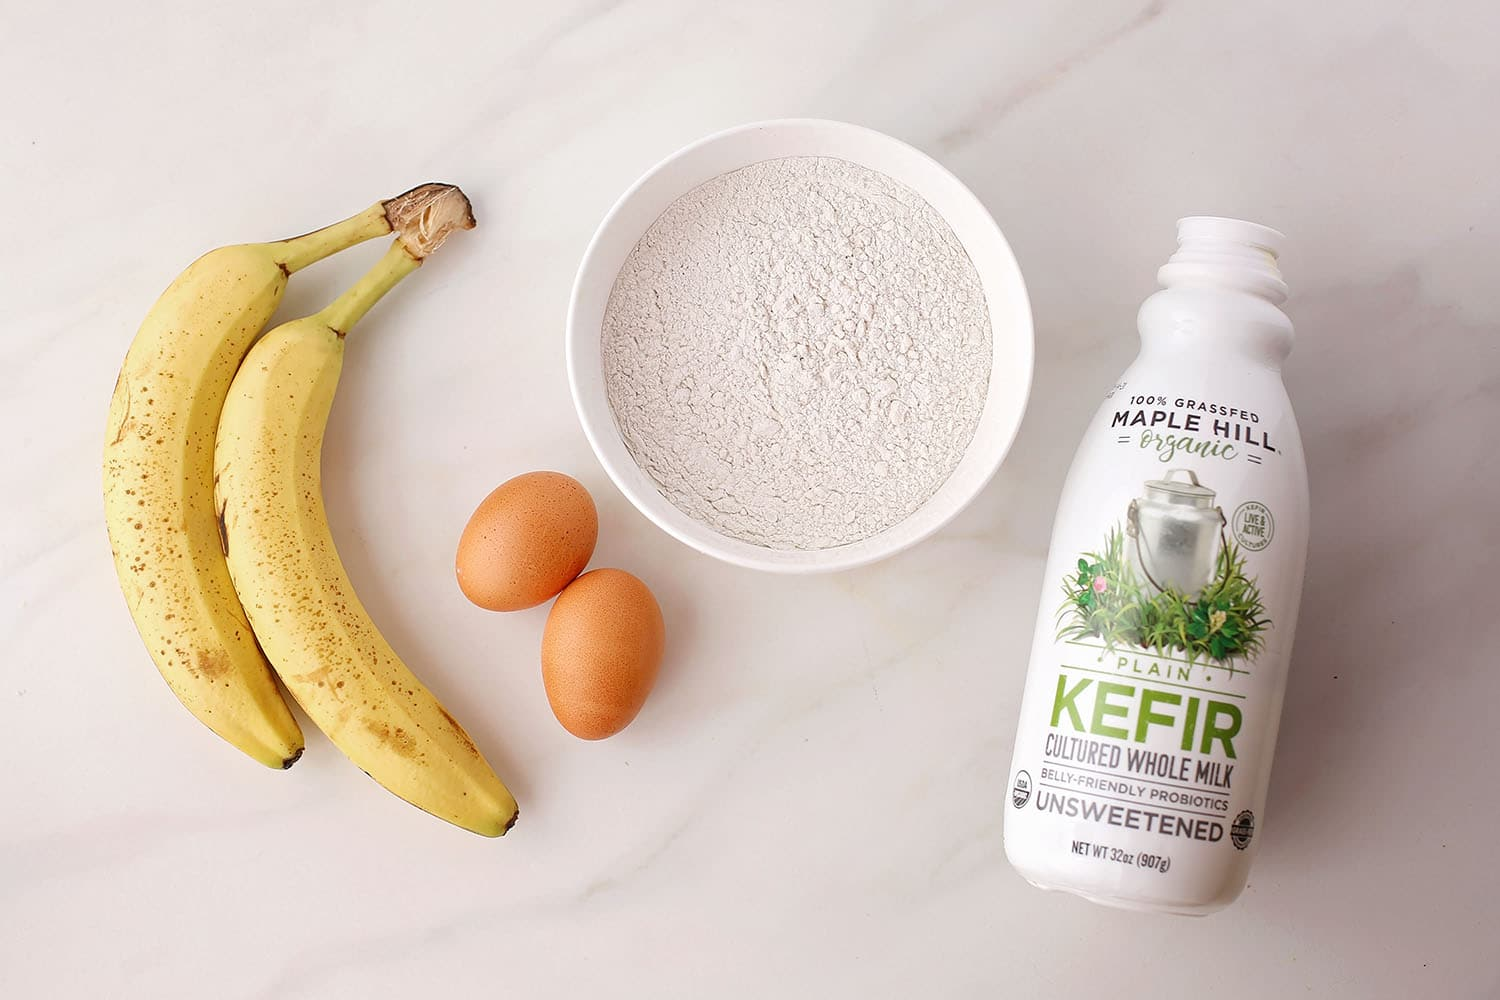 two bananas, bottle of kefir, bowl with flour, two eggs